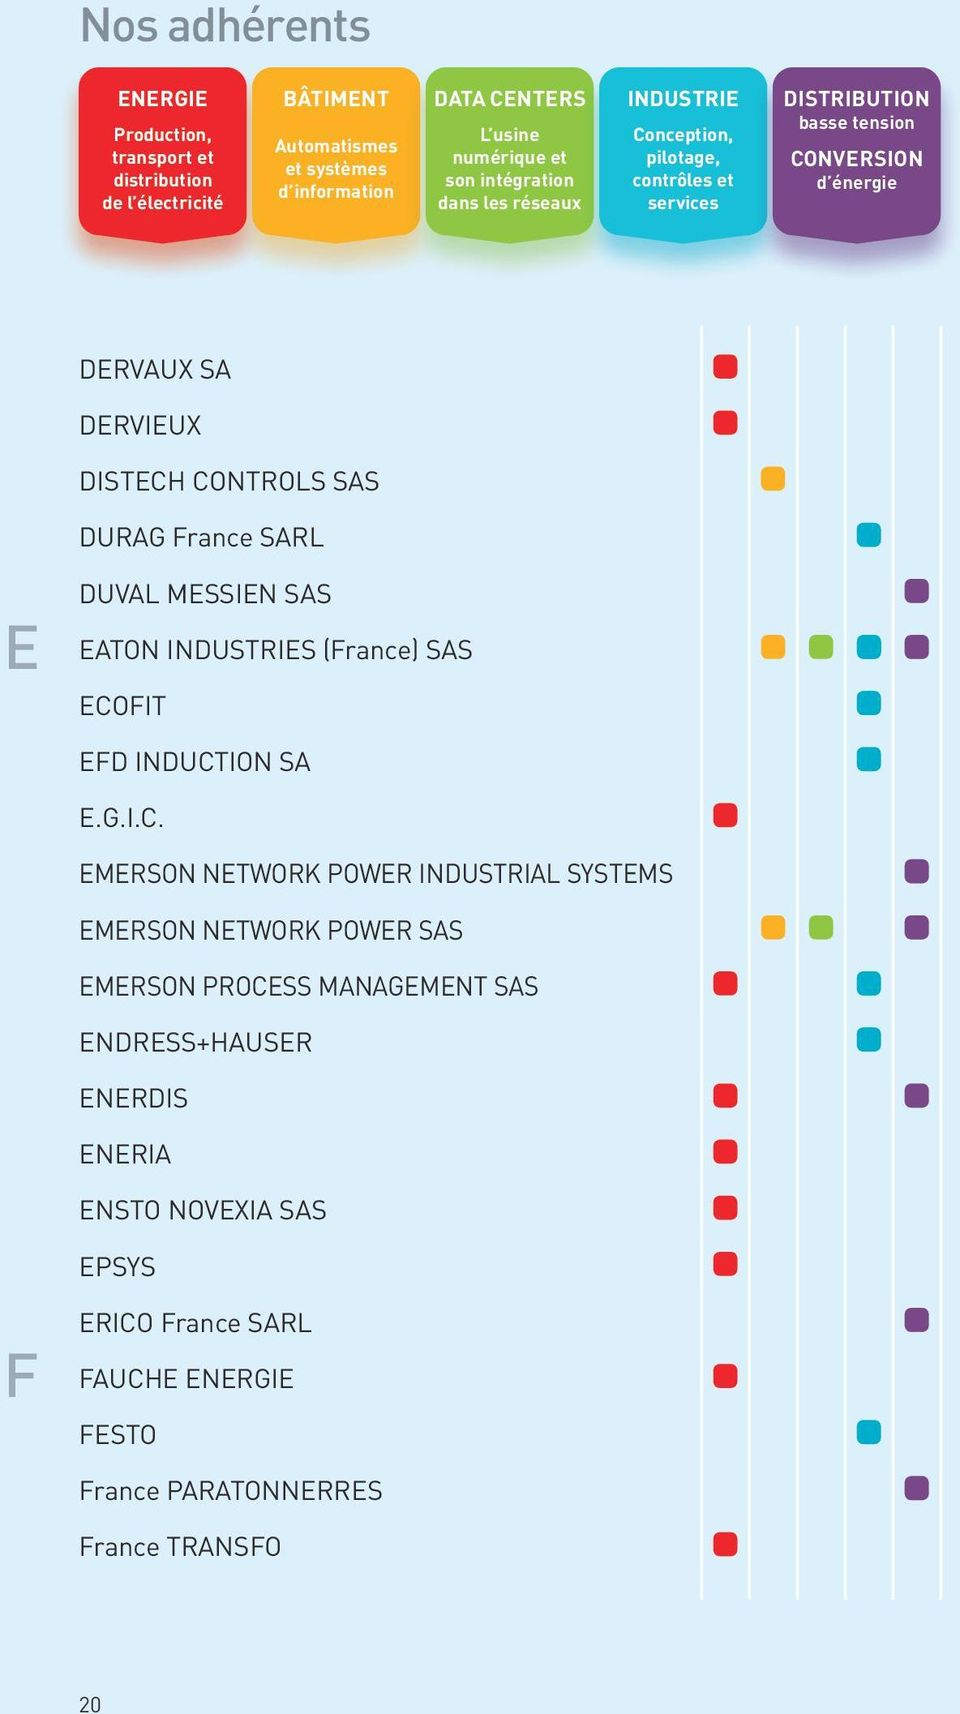 CONTROLS SAS DURAG France SARL E DUVAL MESSIEN SAS EATON INDUSTRIES (France) SAS ECOFIT EFD INDUCTION SA E.G.I.C. EMERSON NETWORK POWER INDUSTRIAL SYSTEMS EMERSON